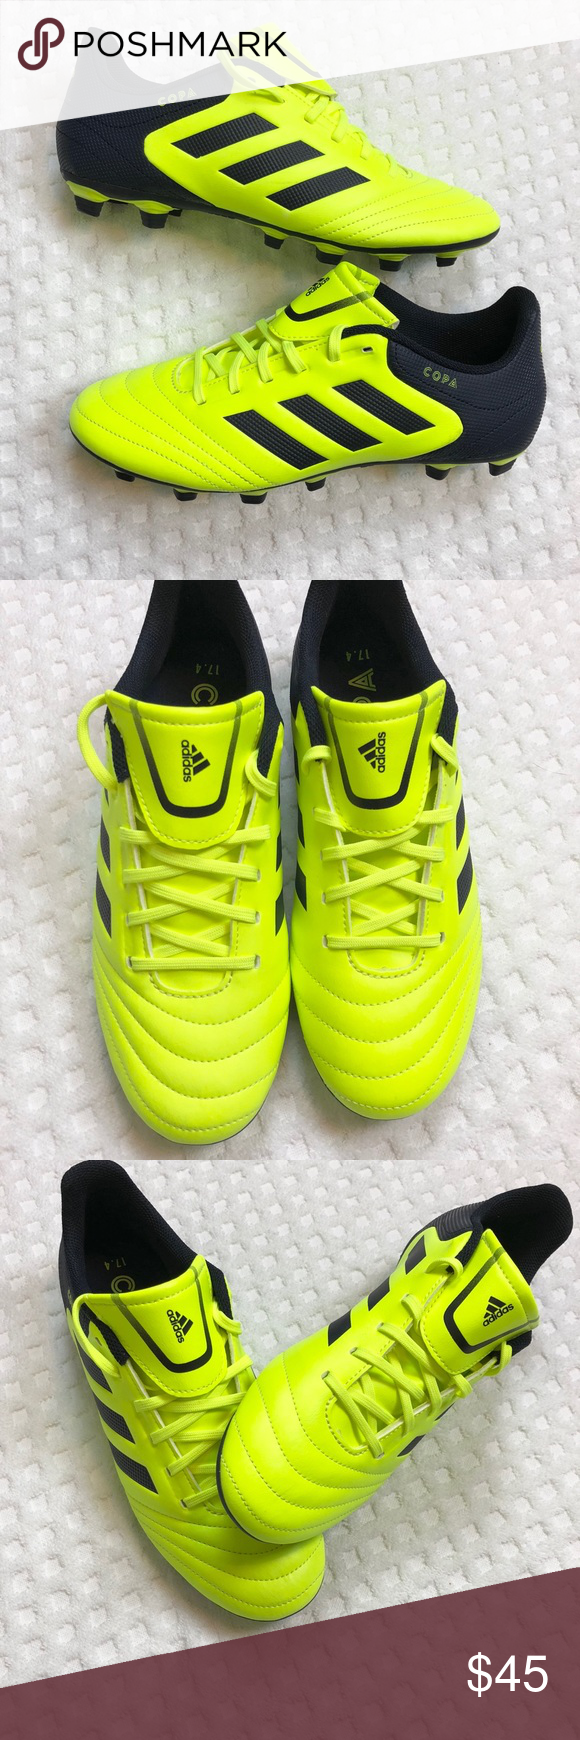 1d639575b Adidas Men s COPA 17.4 FXG Neon Soccer Cleats BRAND NEW (no tags or box)